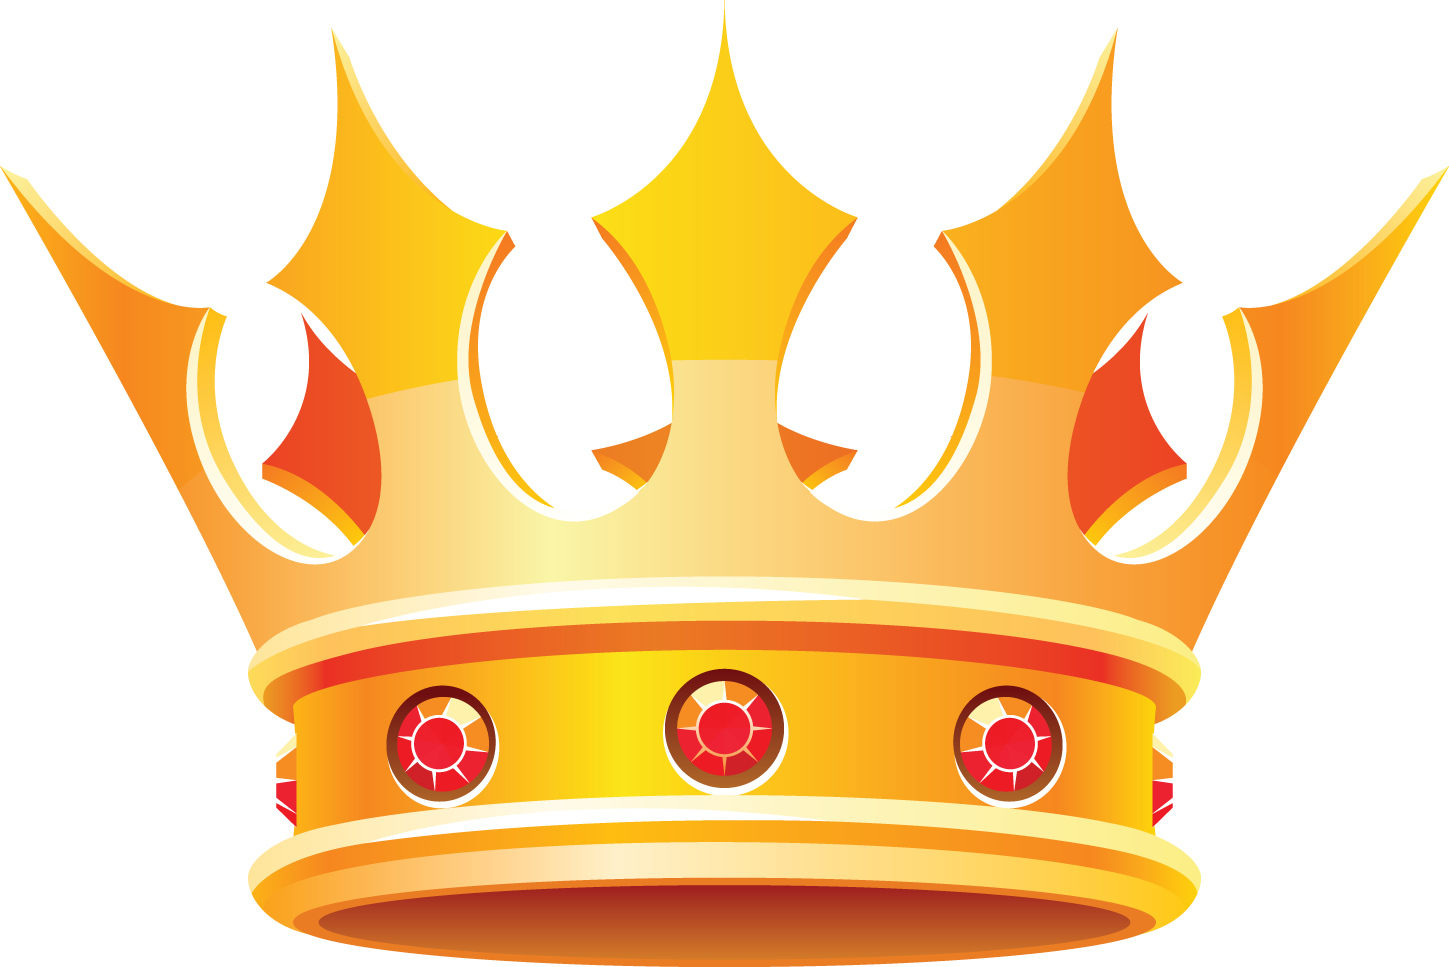 Crown bearers clipart red and black clipart free stock King crown png clipart - ClipartFest clipart free stock